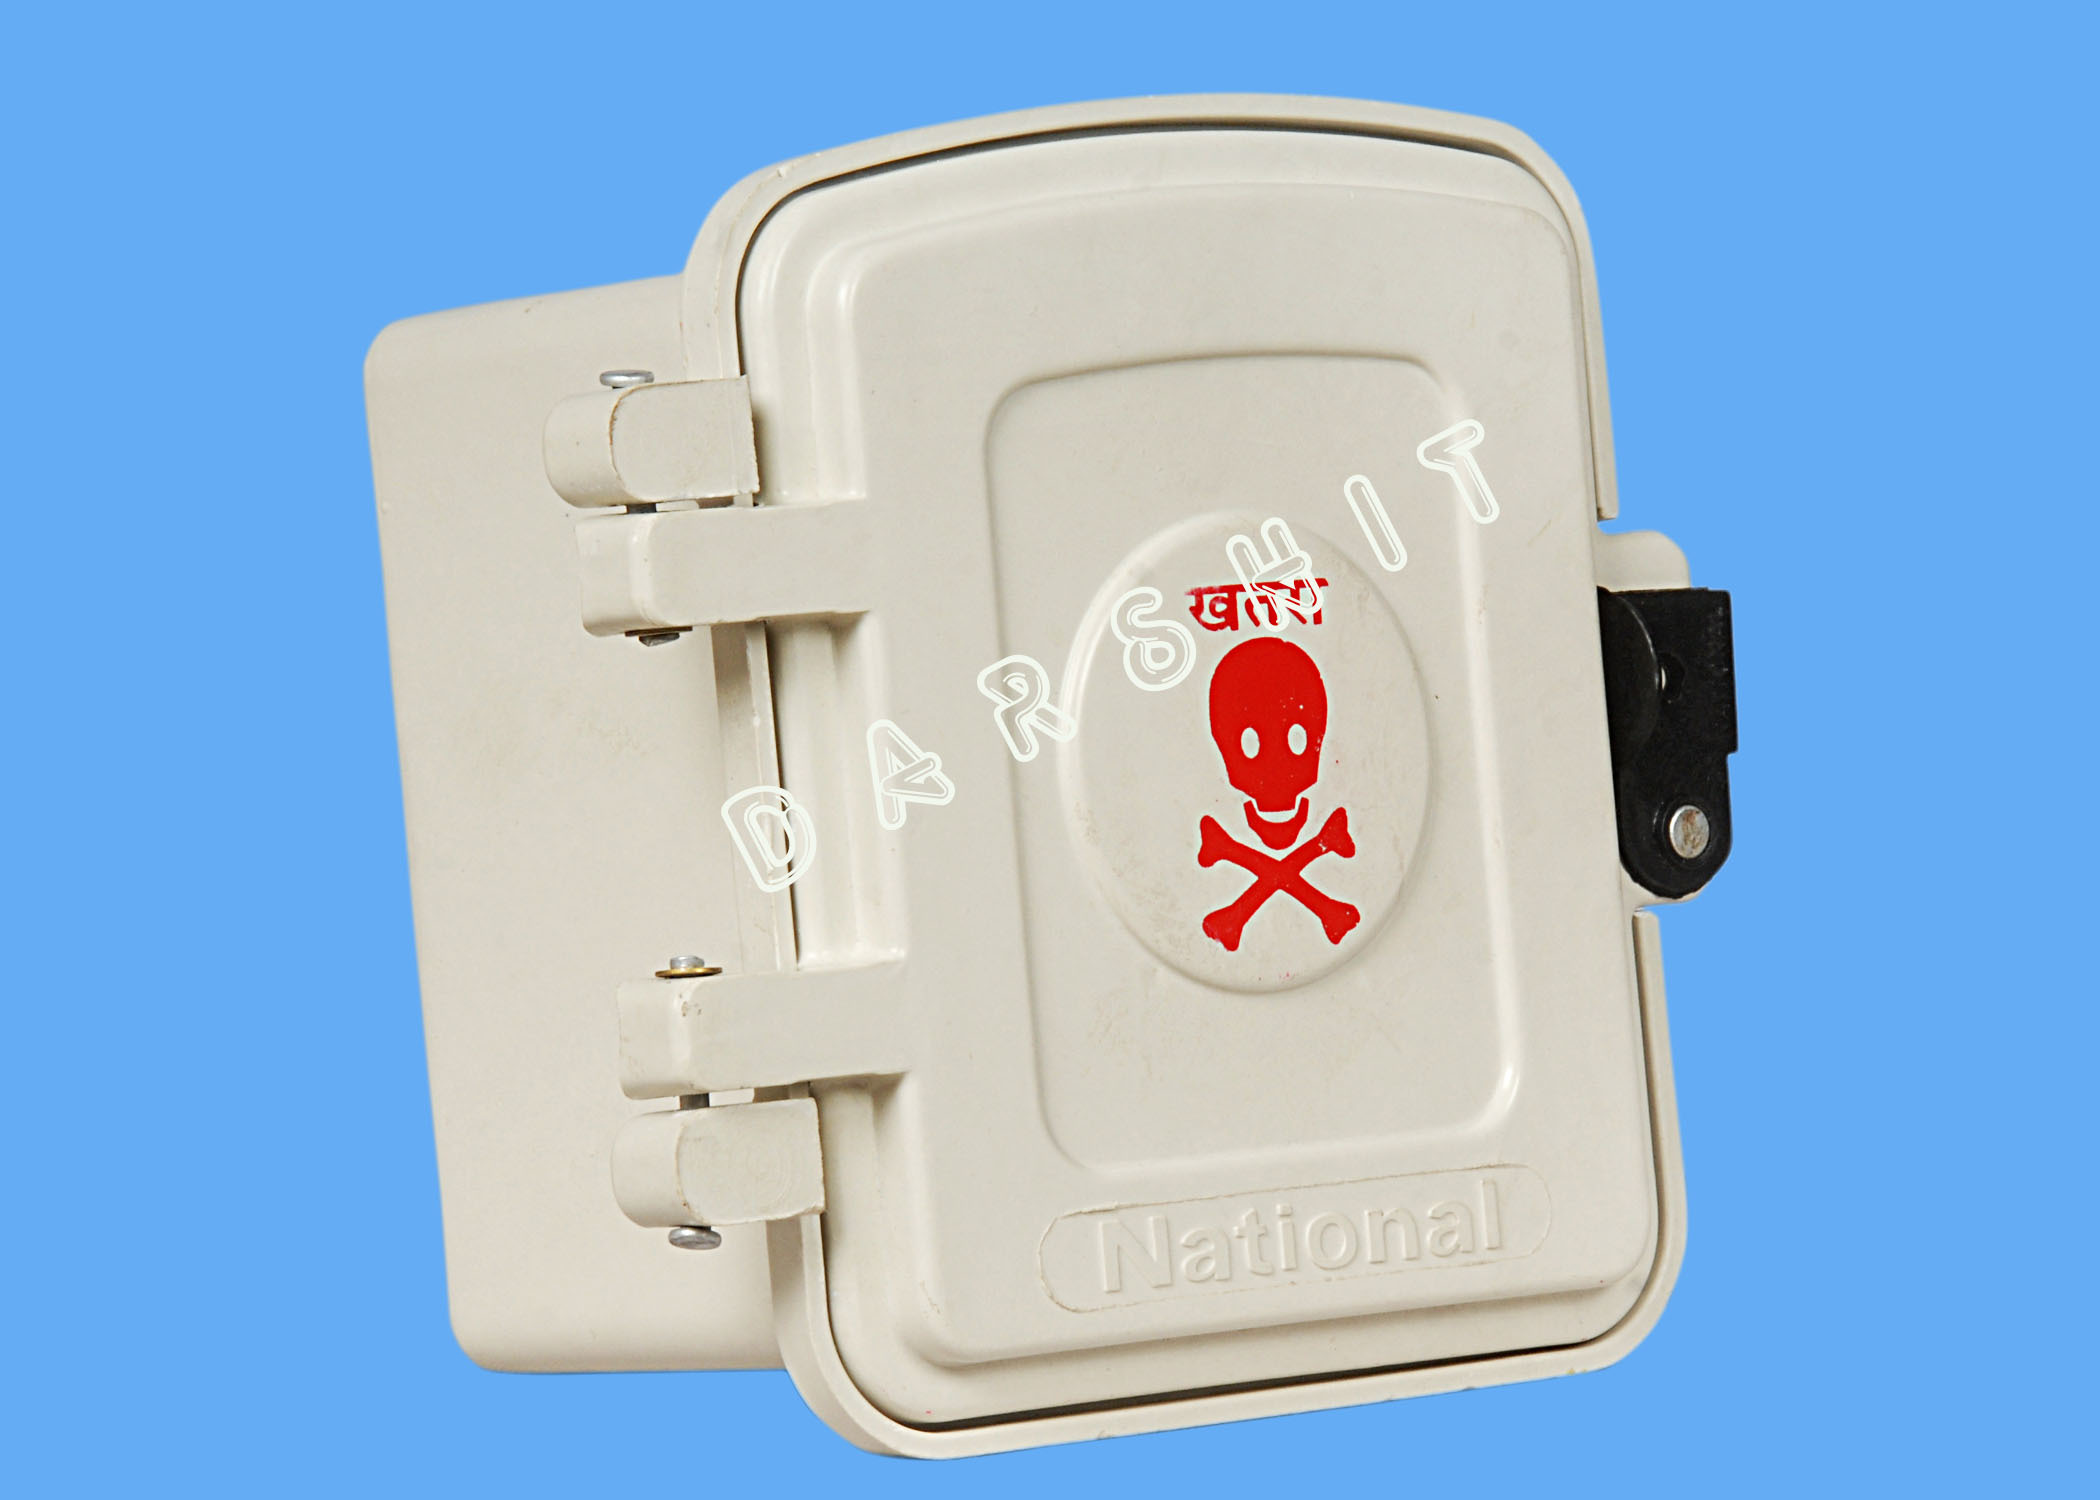 National Junction Box